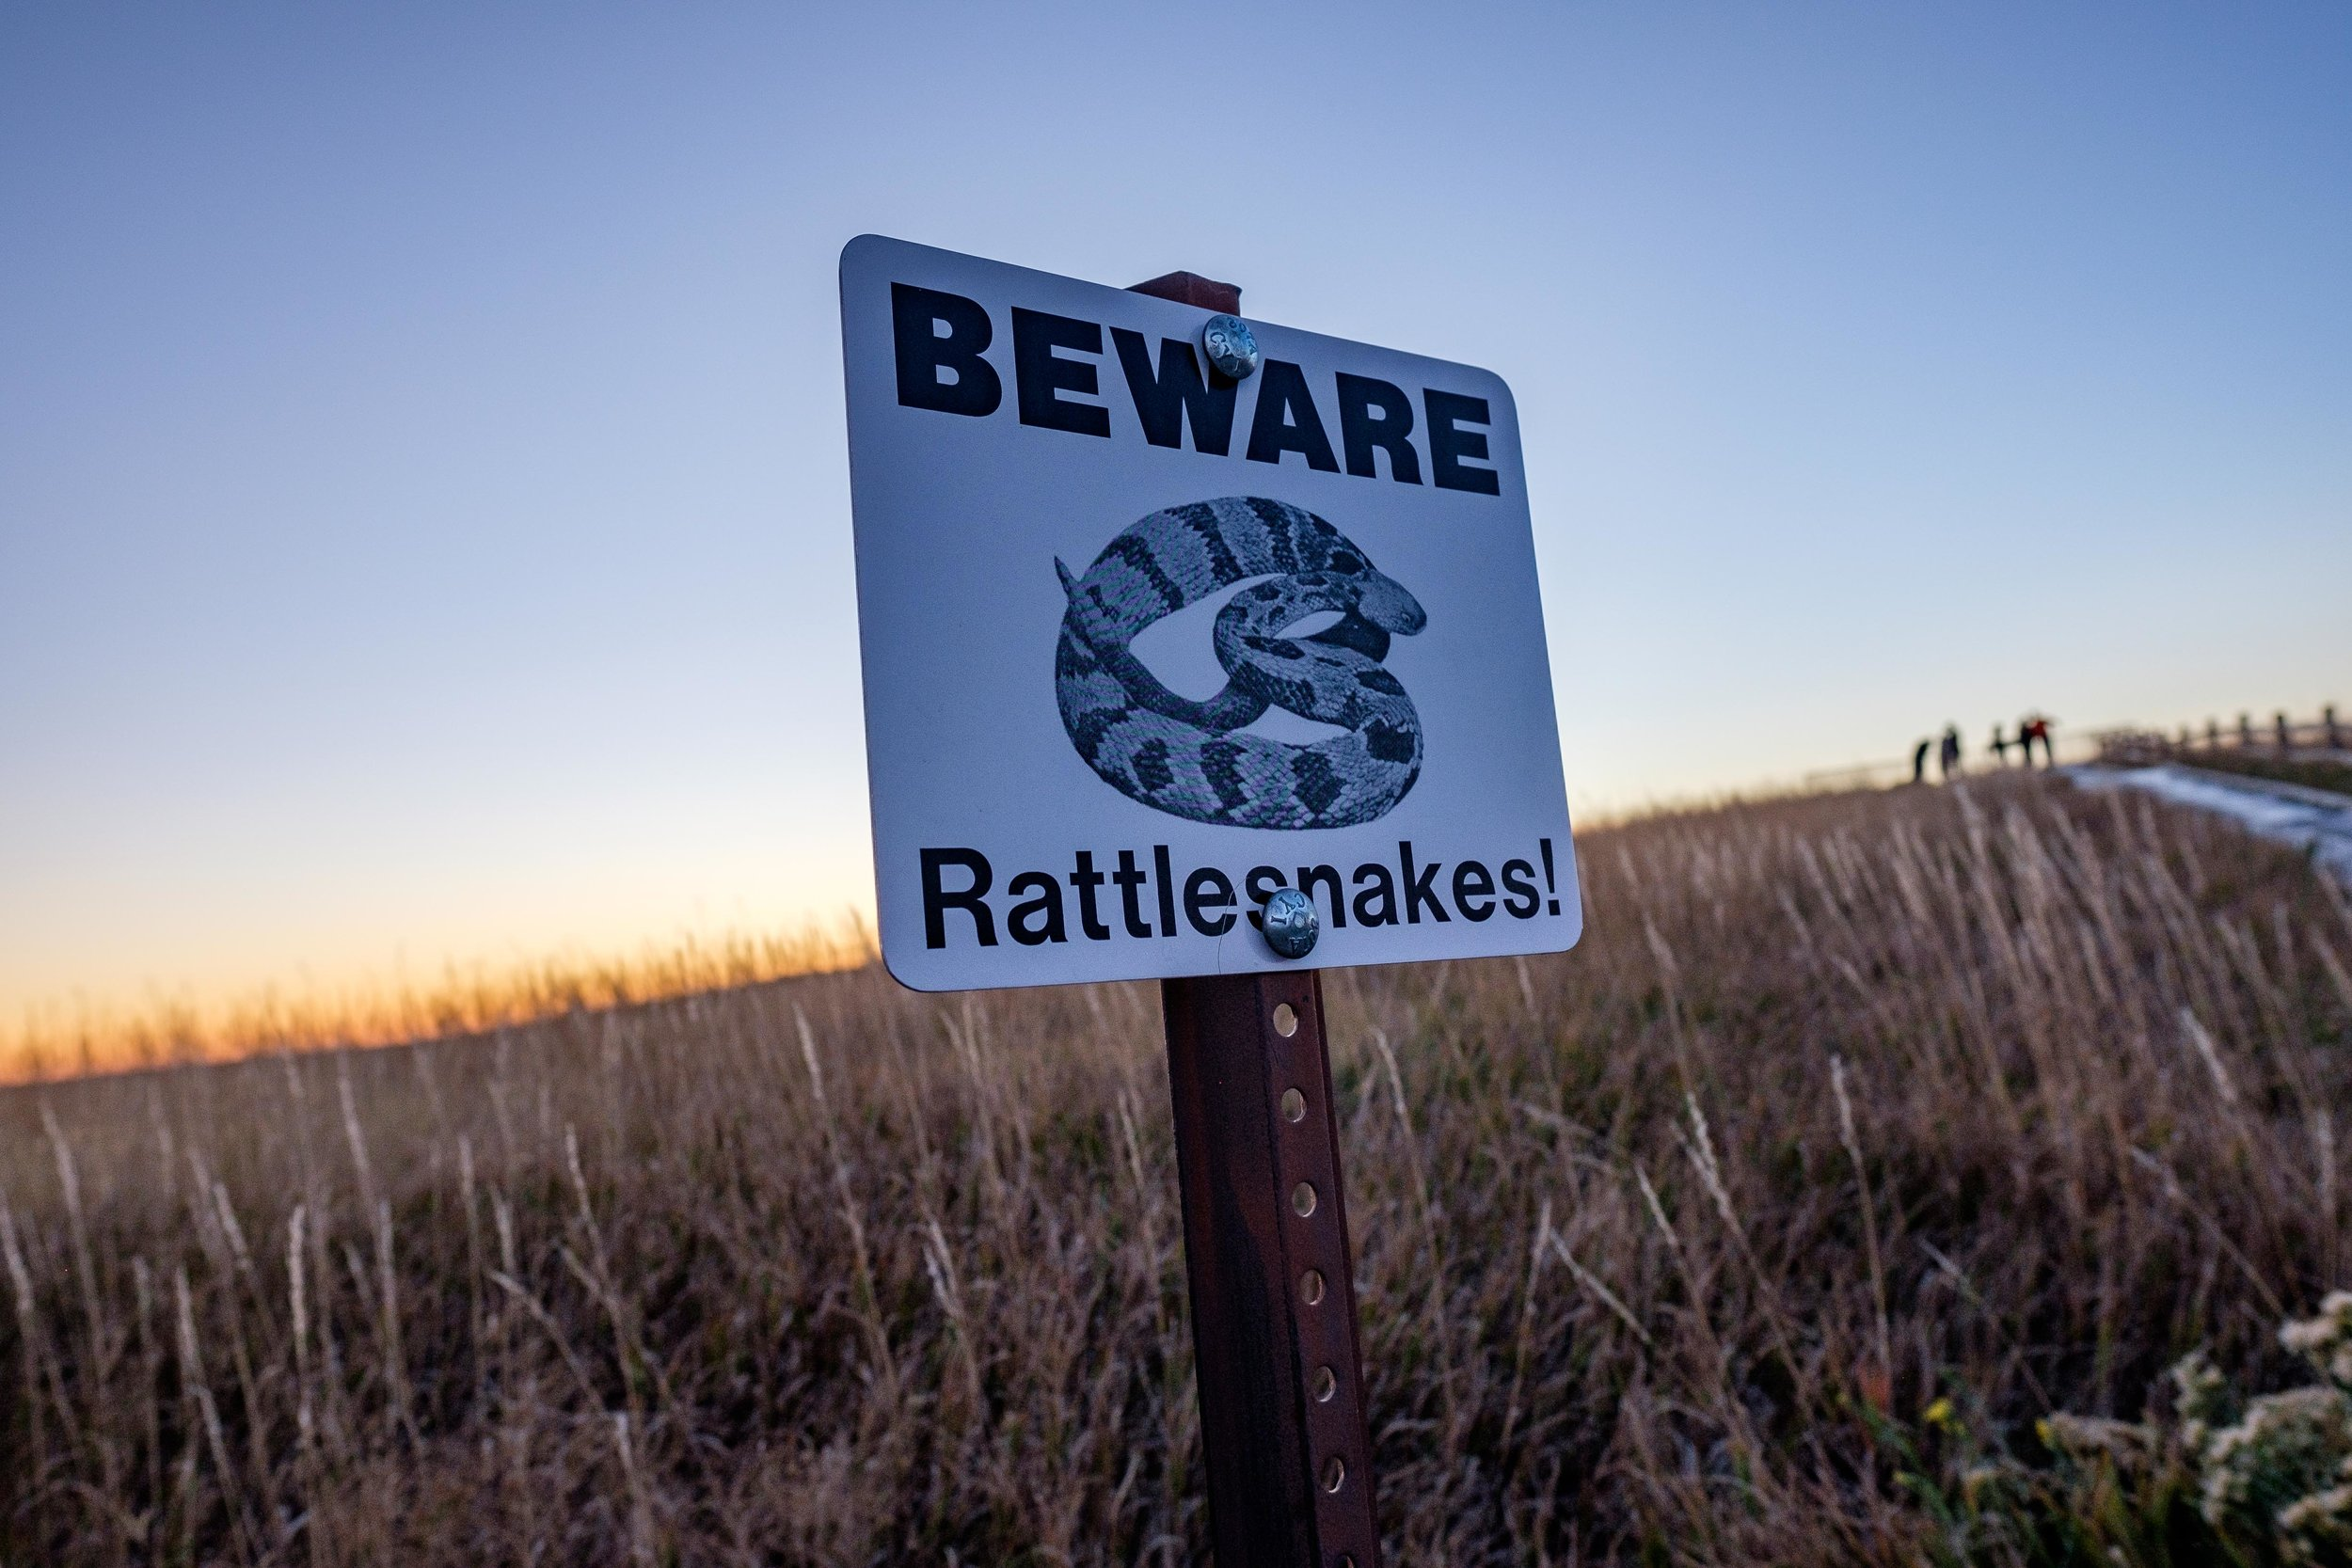 Prairie rattlesnakes are the only venomous snake in Badlands National Park.